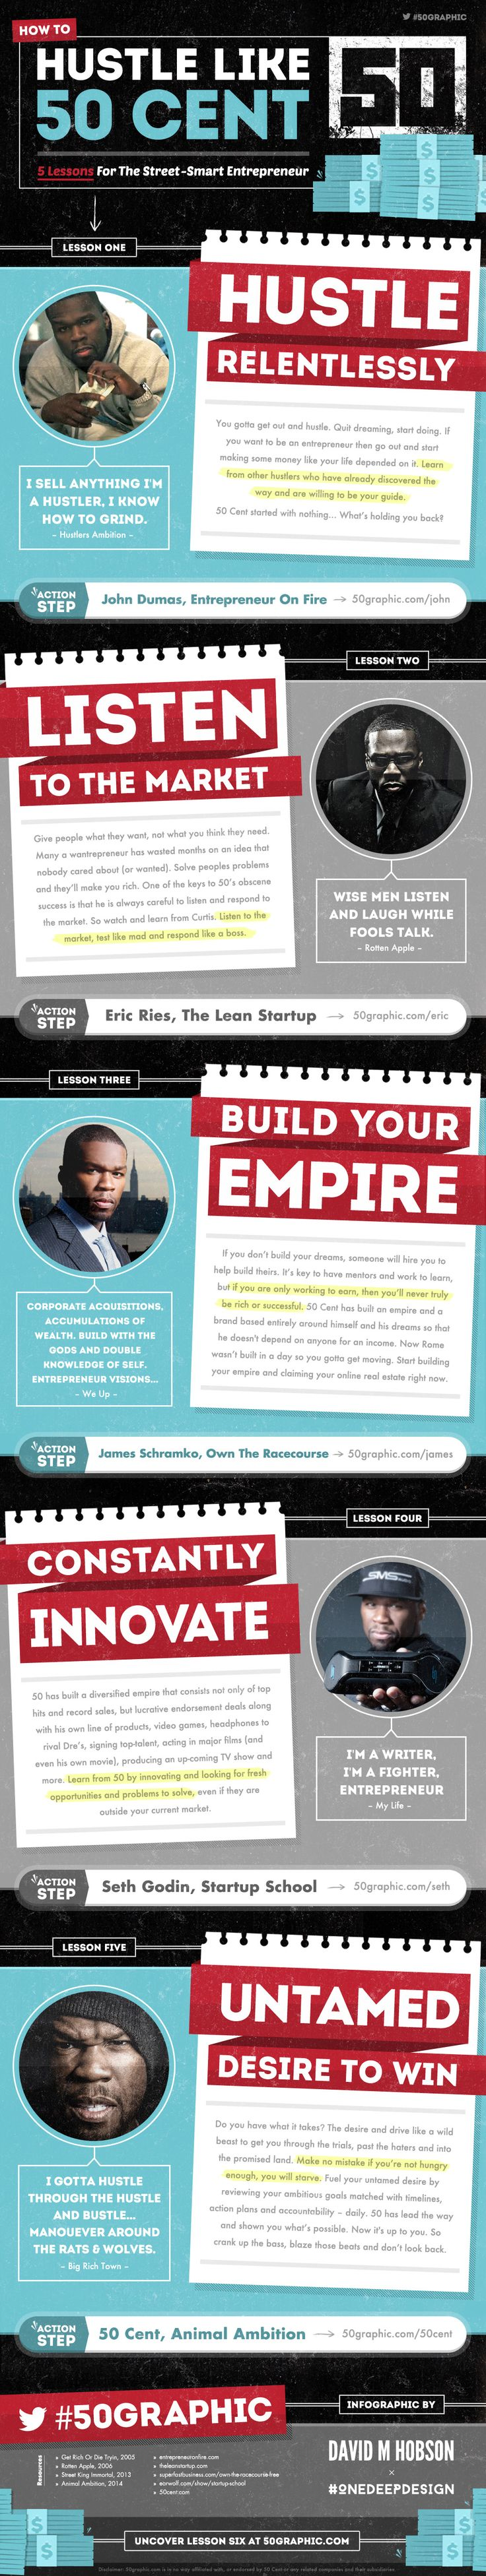 How To Hustle Like 50 Cent: 5 Lessons for the street smart entrepreneur #50Cent #entrepreneur #infographic